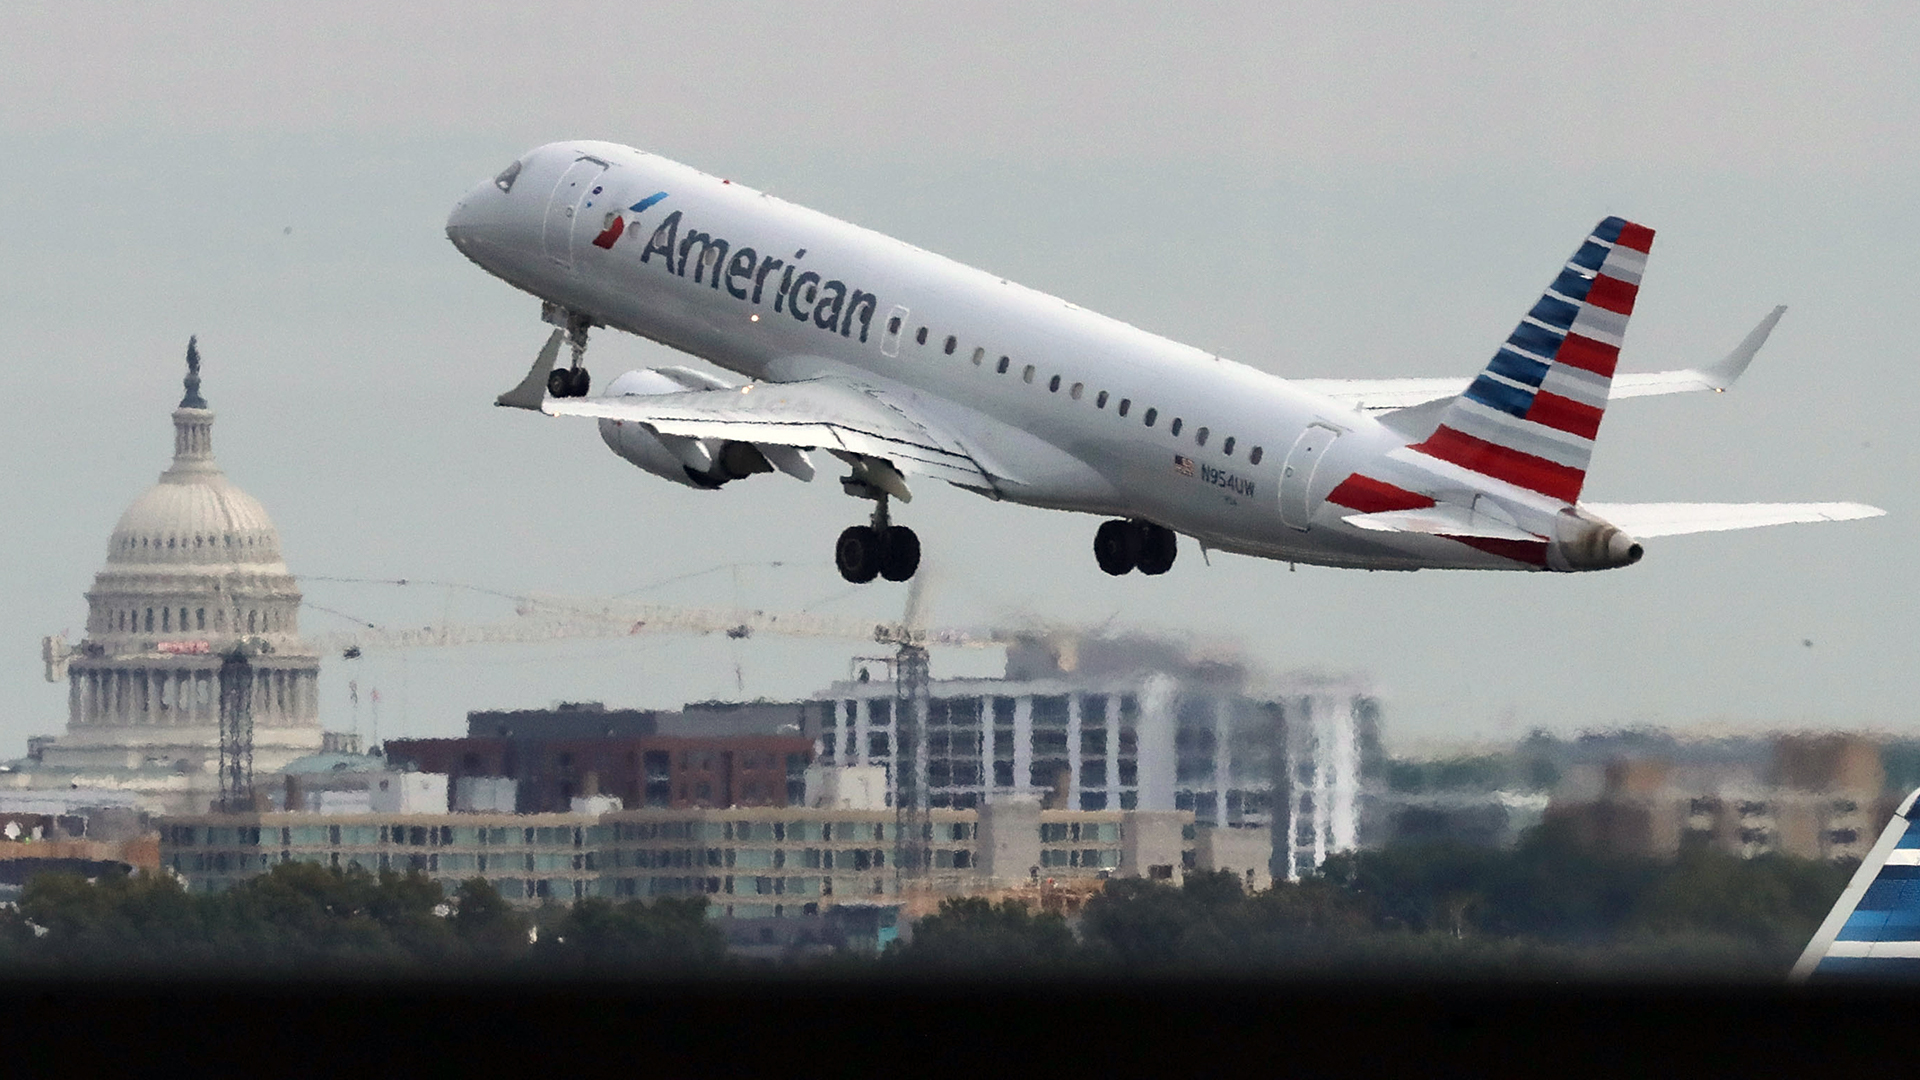 American Airlines plane takes off at Reagan airport-159532.jpg28583601